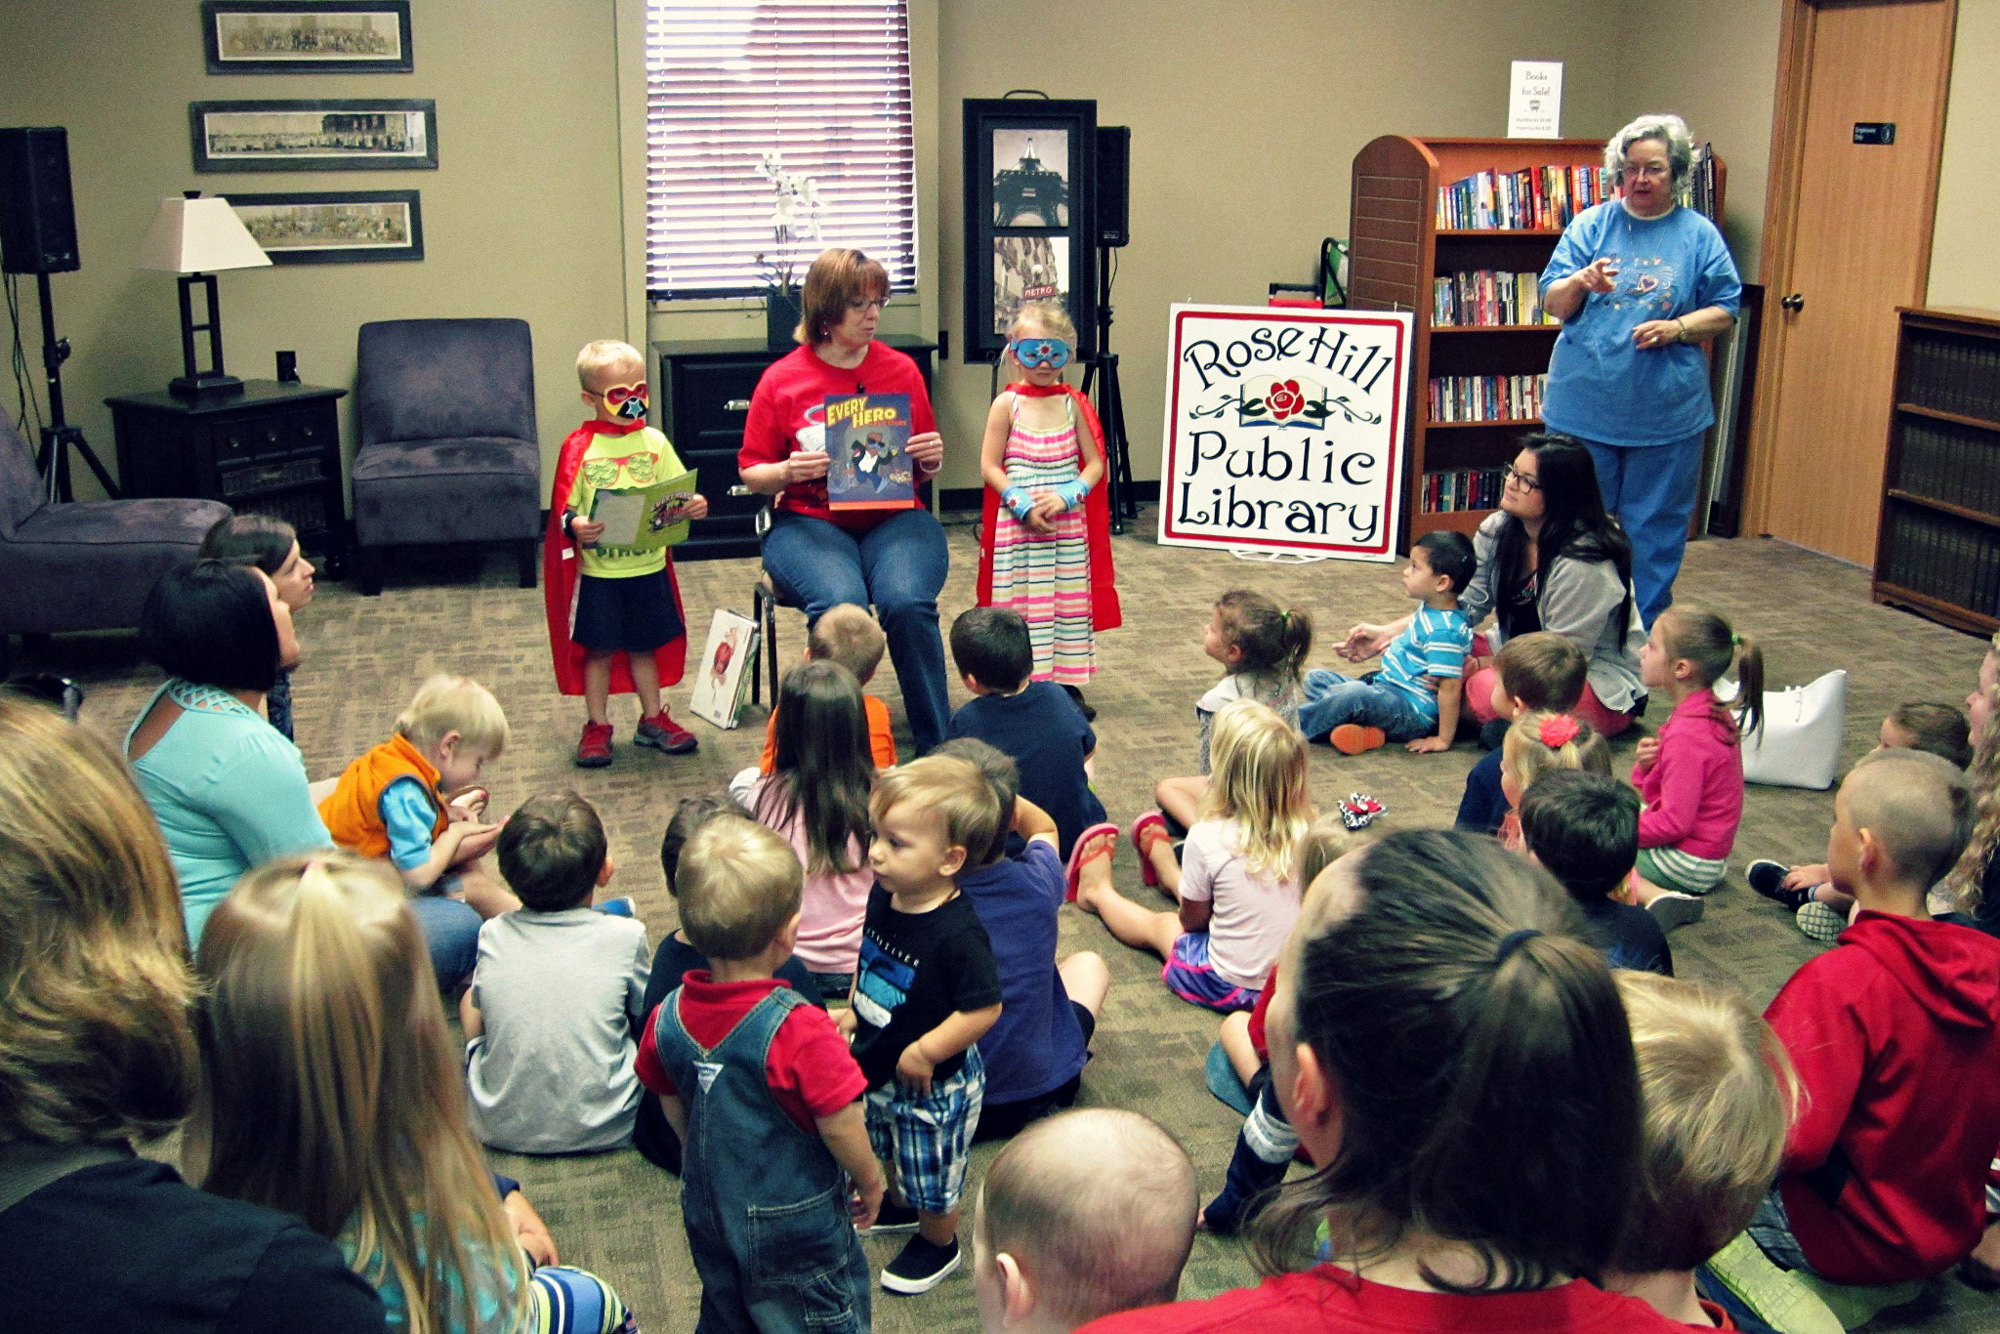 Story time youth readings rose hill public library read check out books games movies dvds best fiction novels libraries librarians rh ks kansas